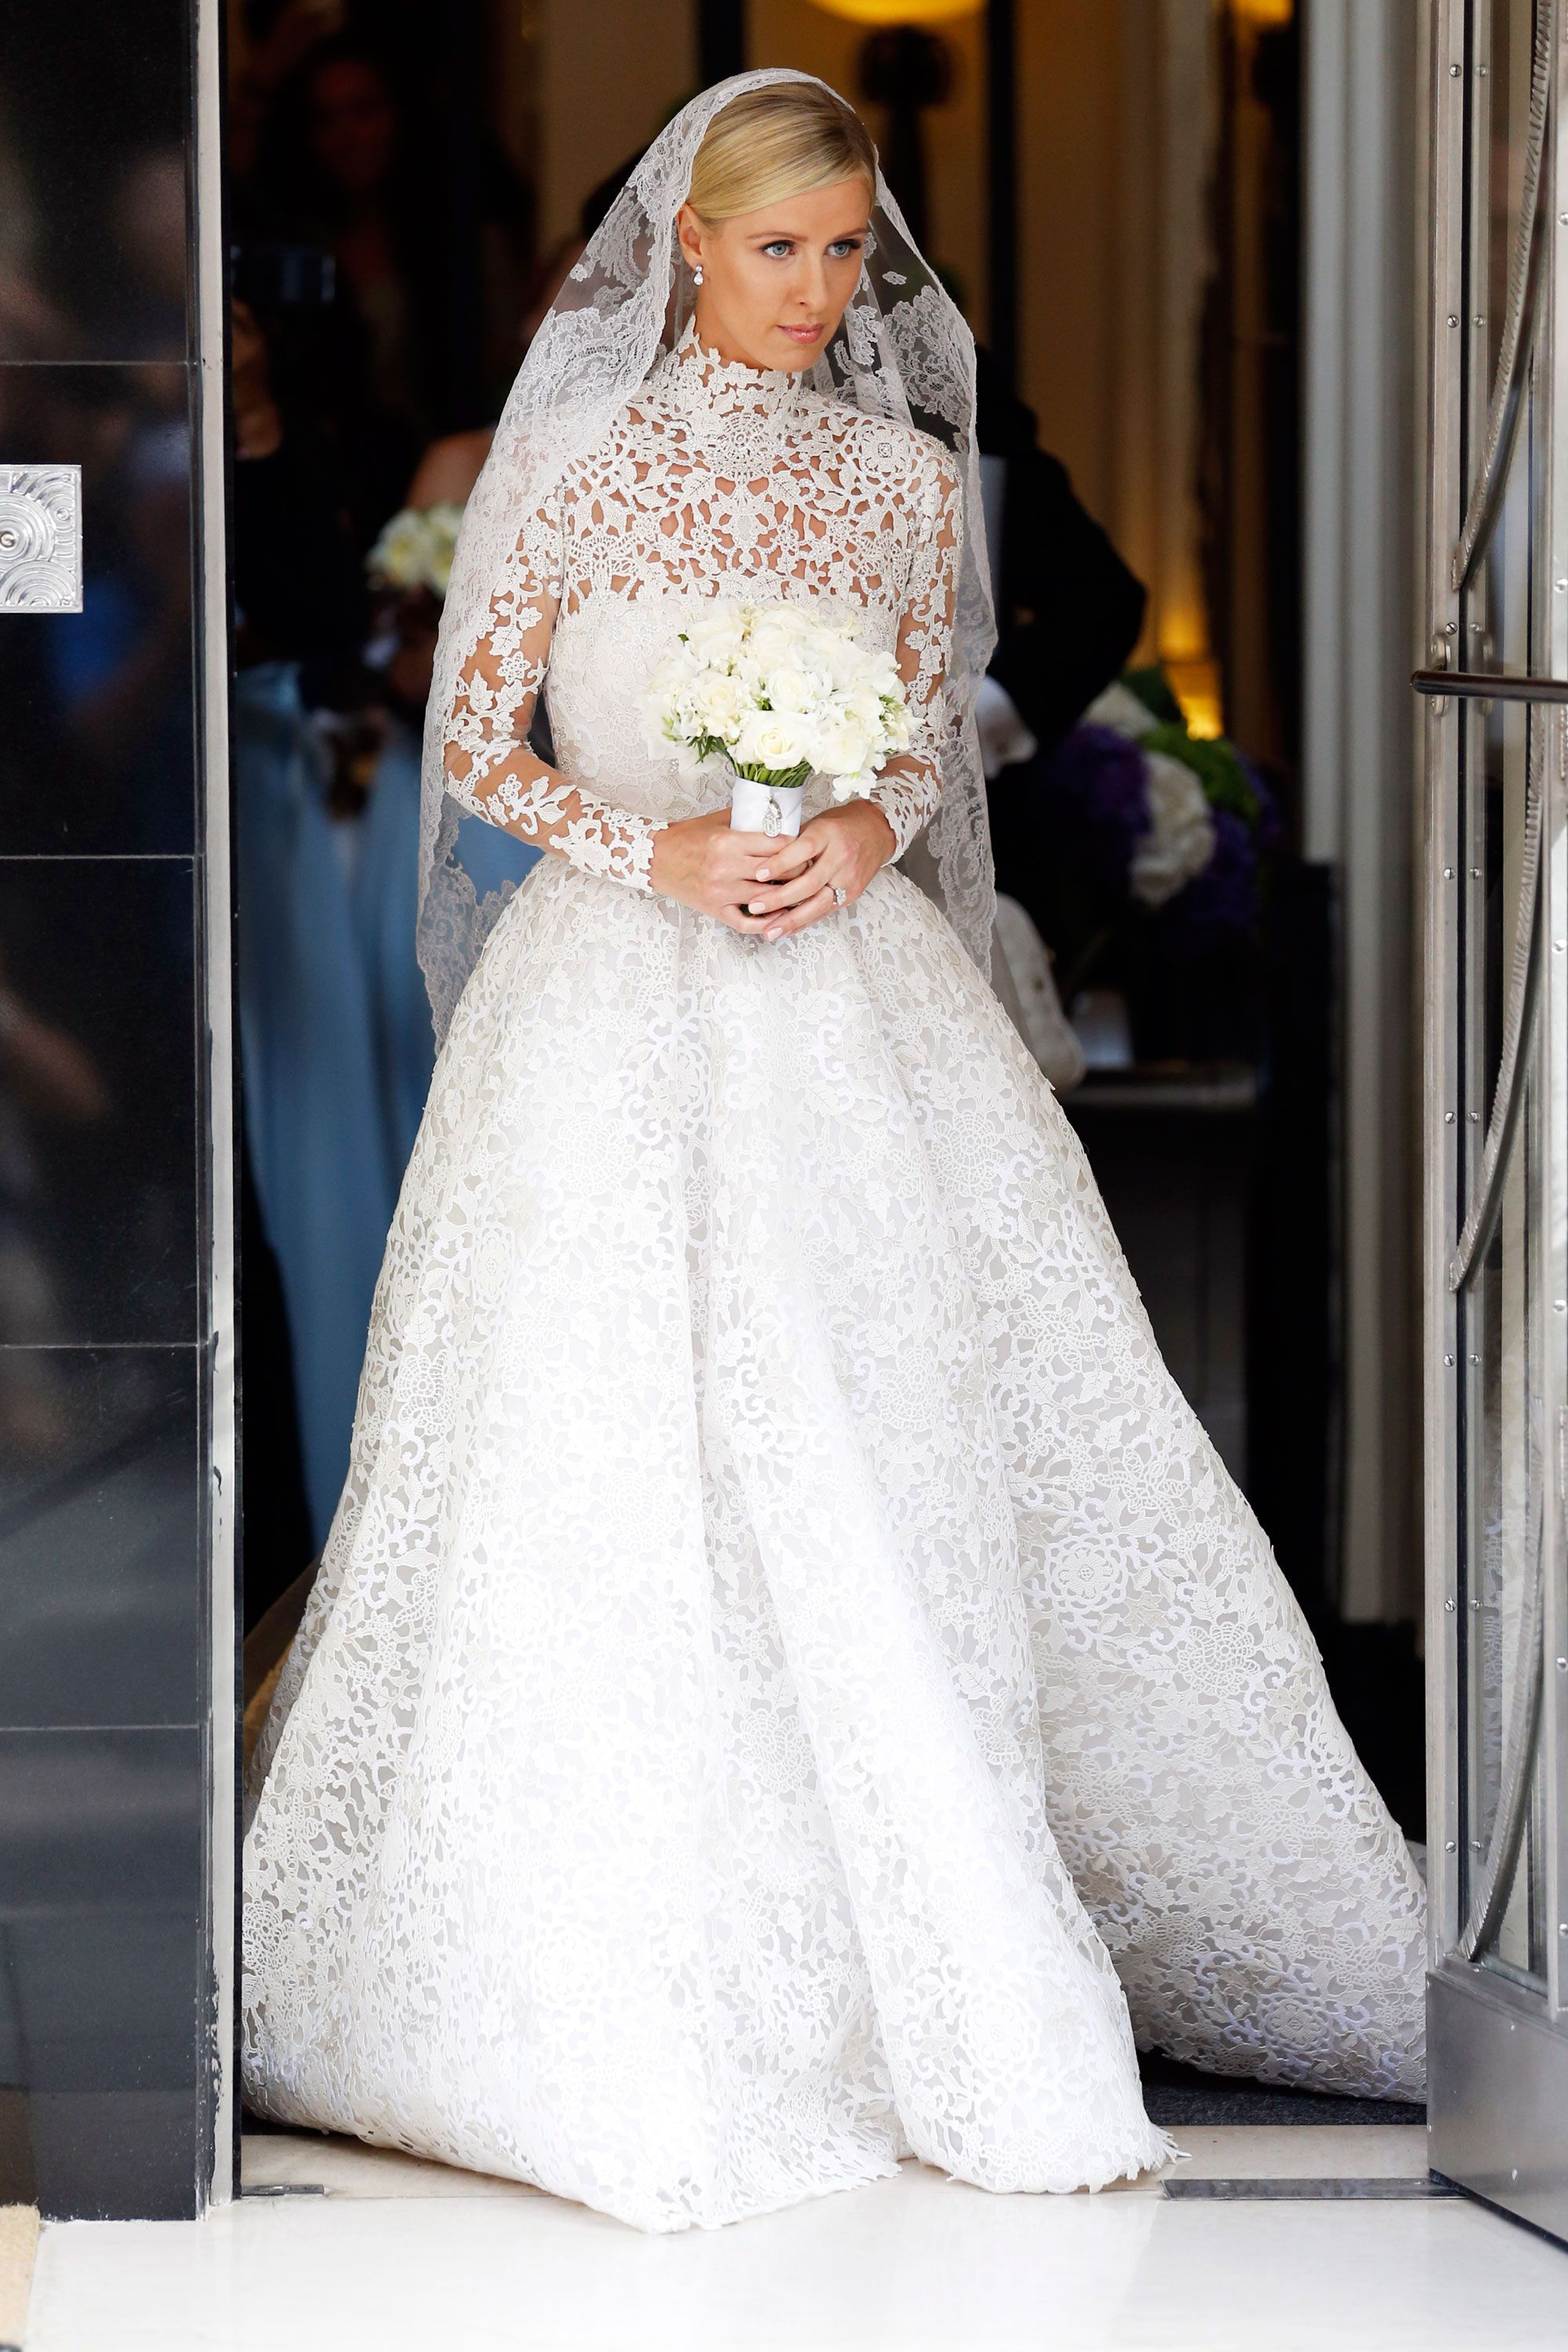 40 most stunning celebrity wedding dresses of all time celeb 40 most stunning celebrity wedding dresses of all time celeb bridal gowns ombrellifo Images